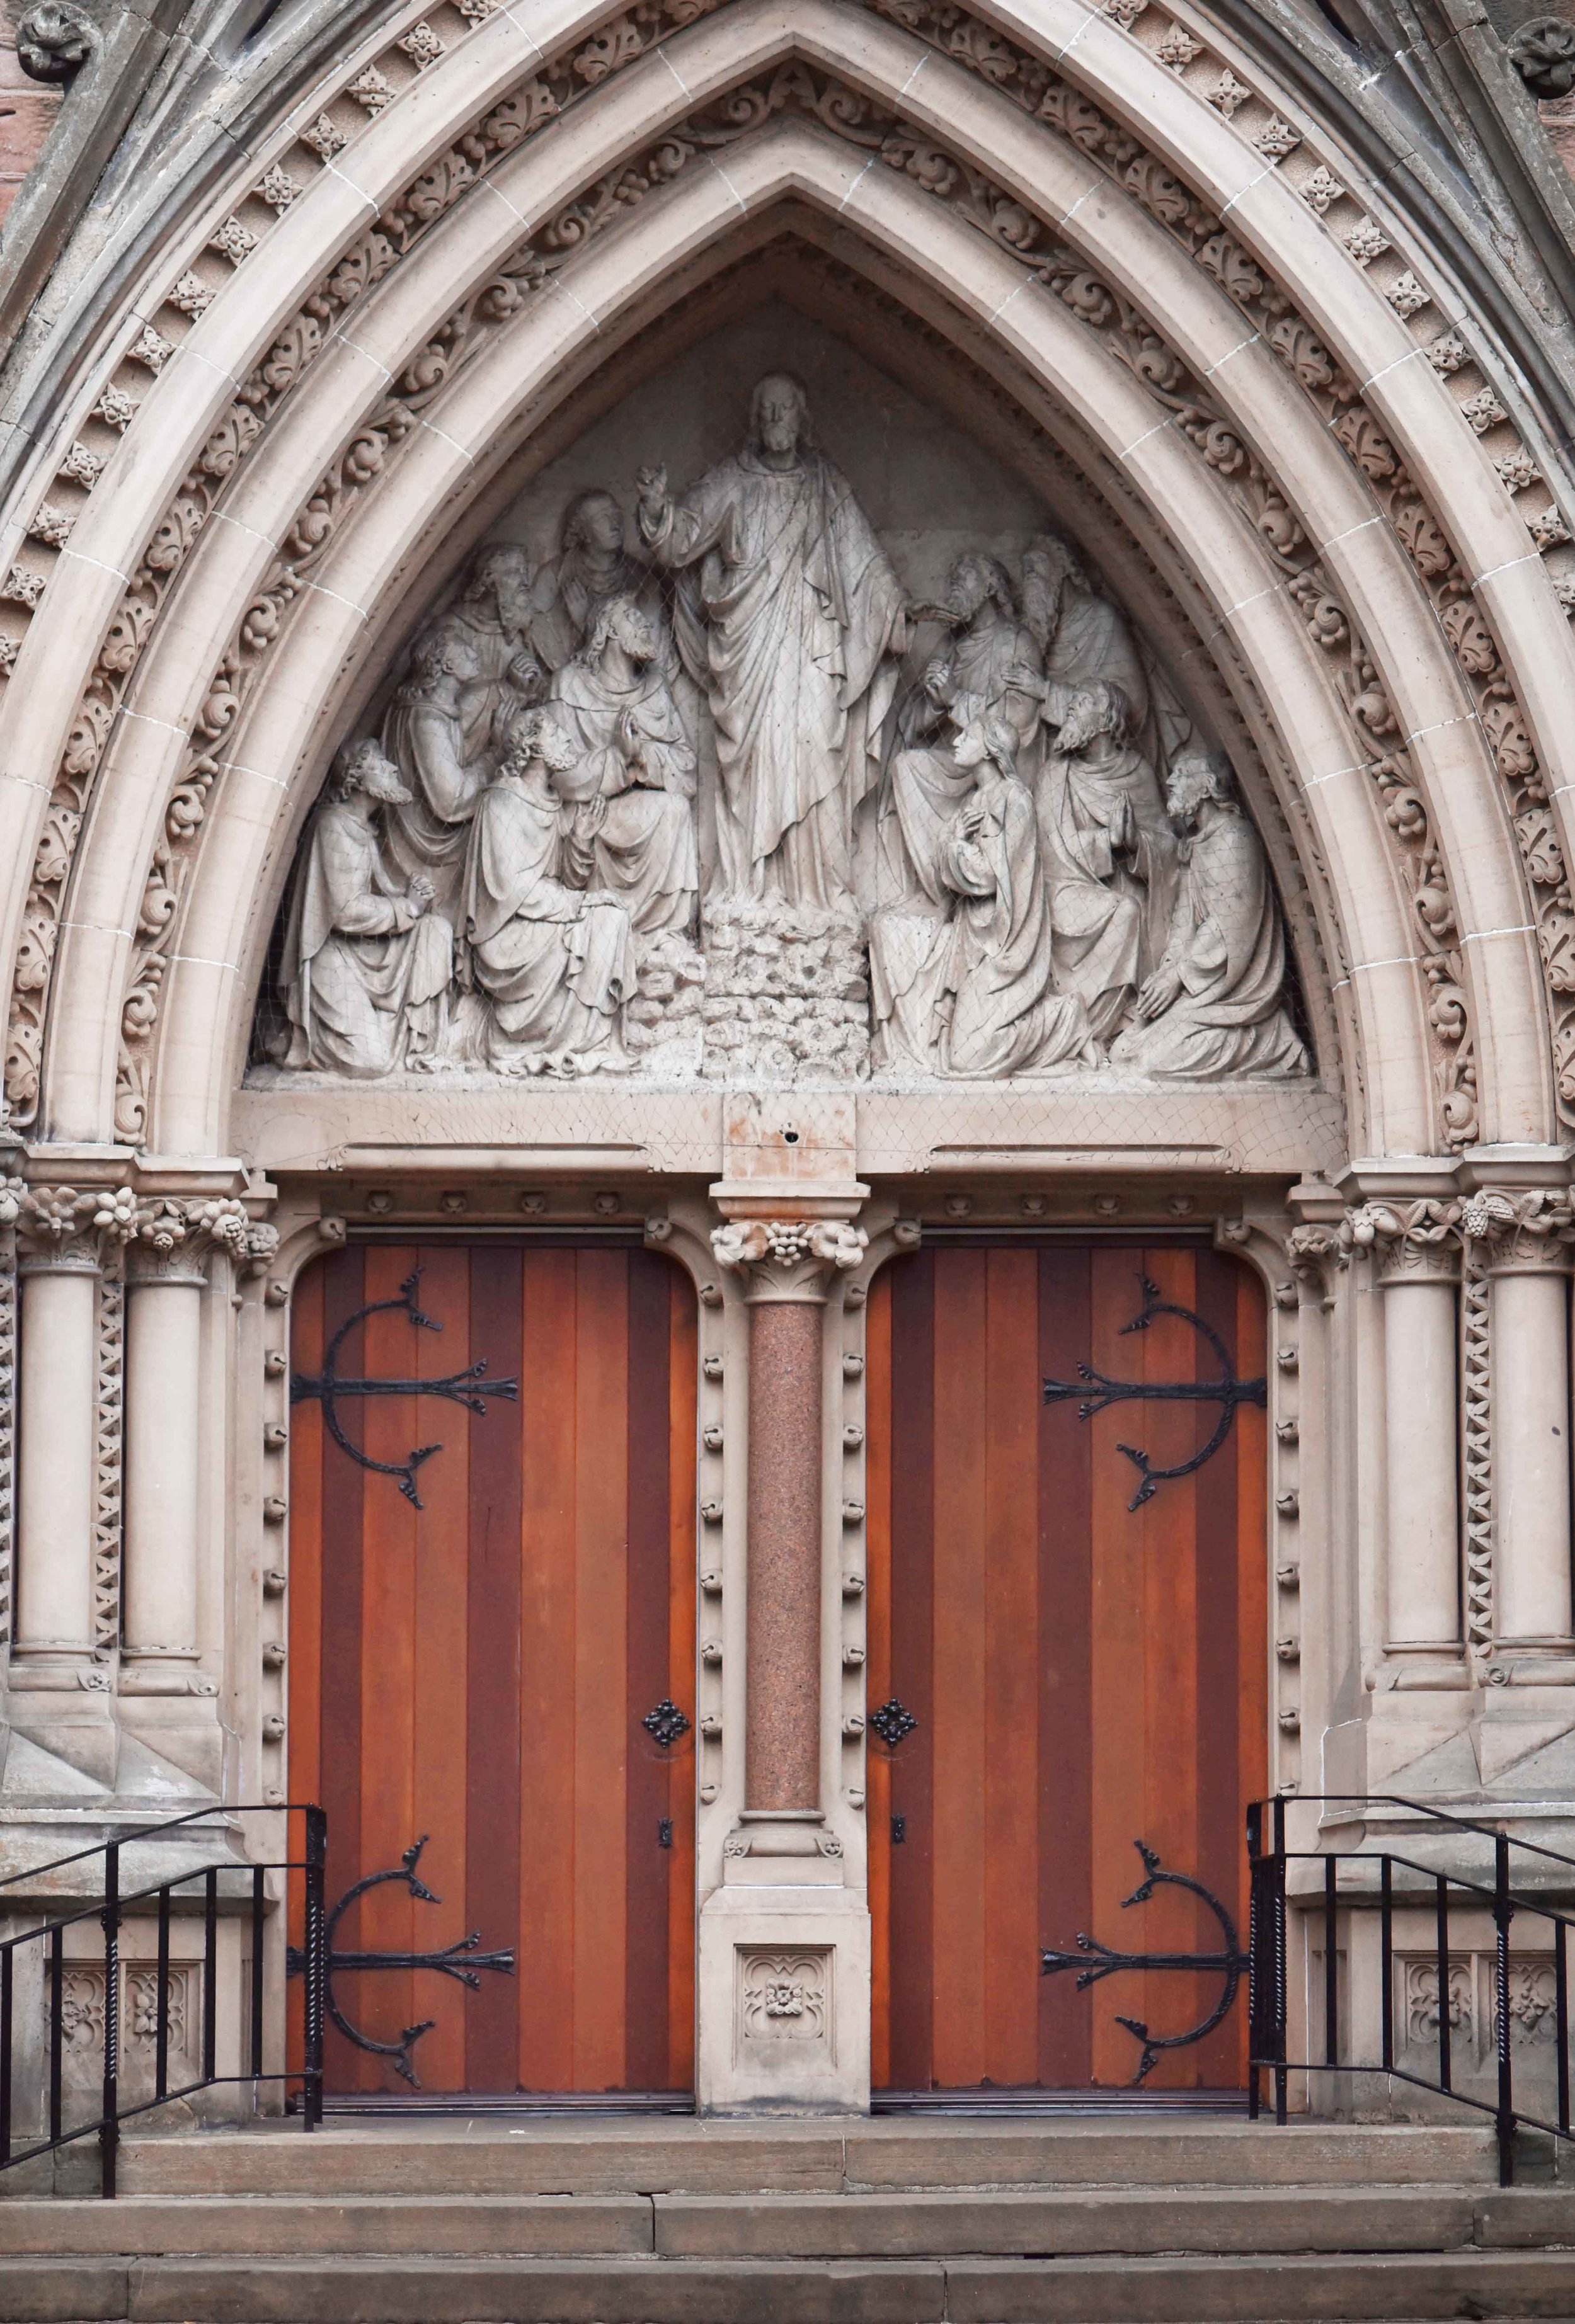 Church in Inverness, beautifully carved church door, Inverness, Scotland. Image©sourcingstyle.com